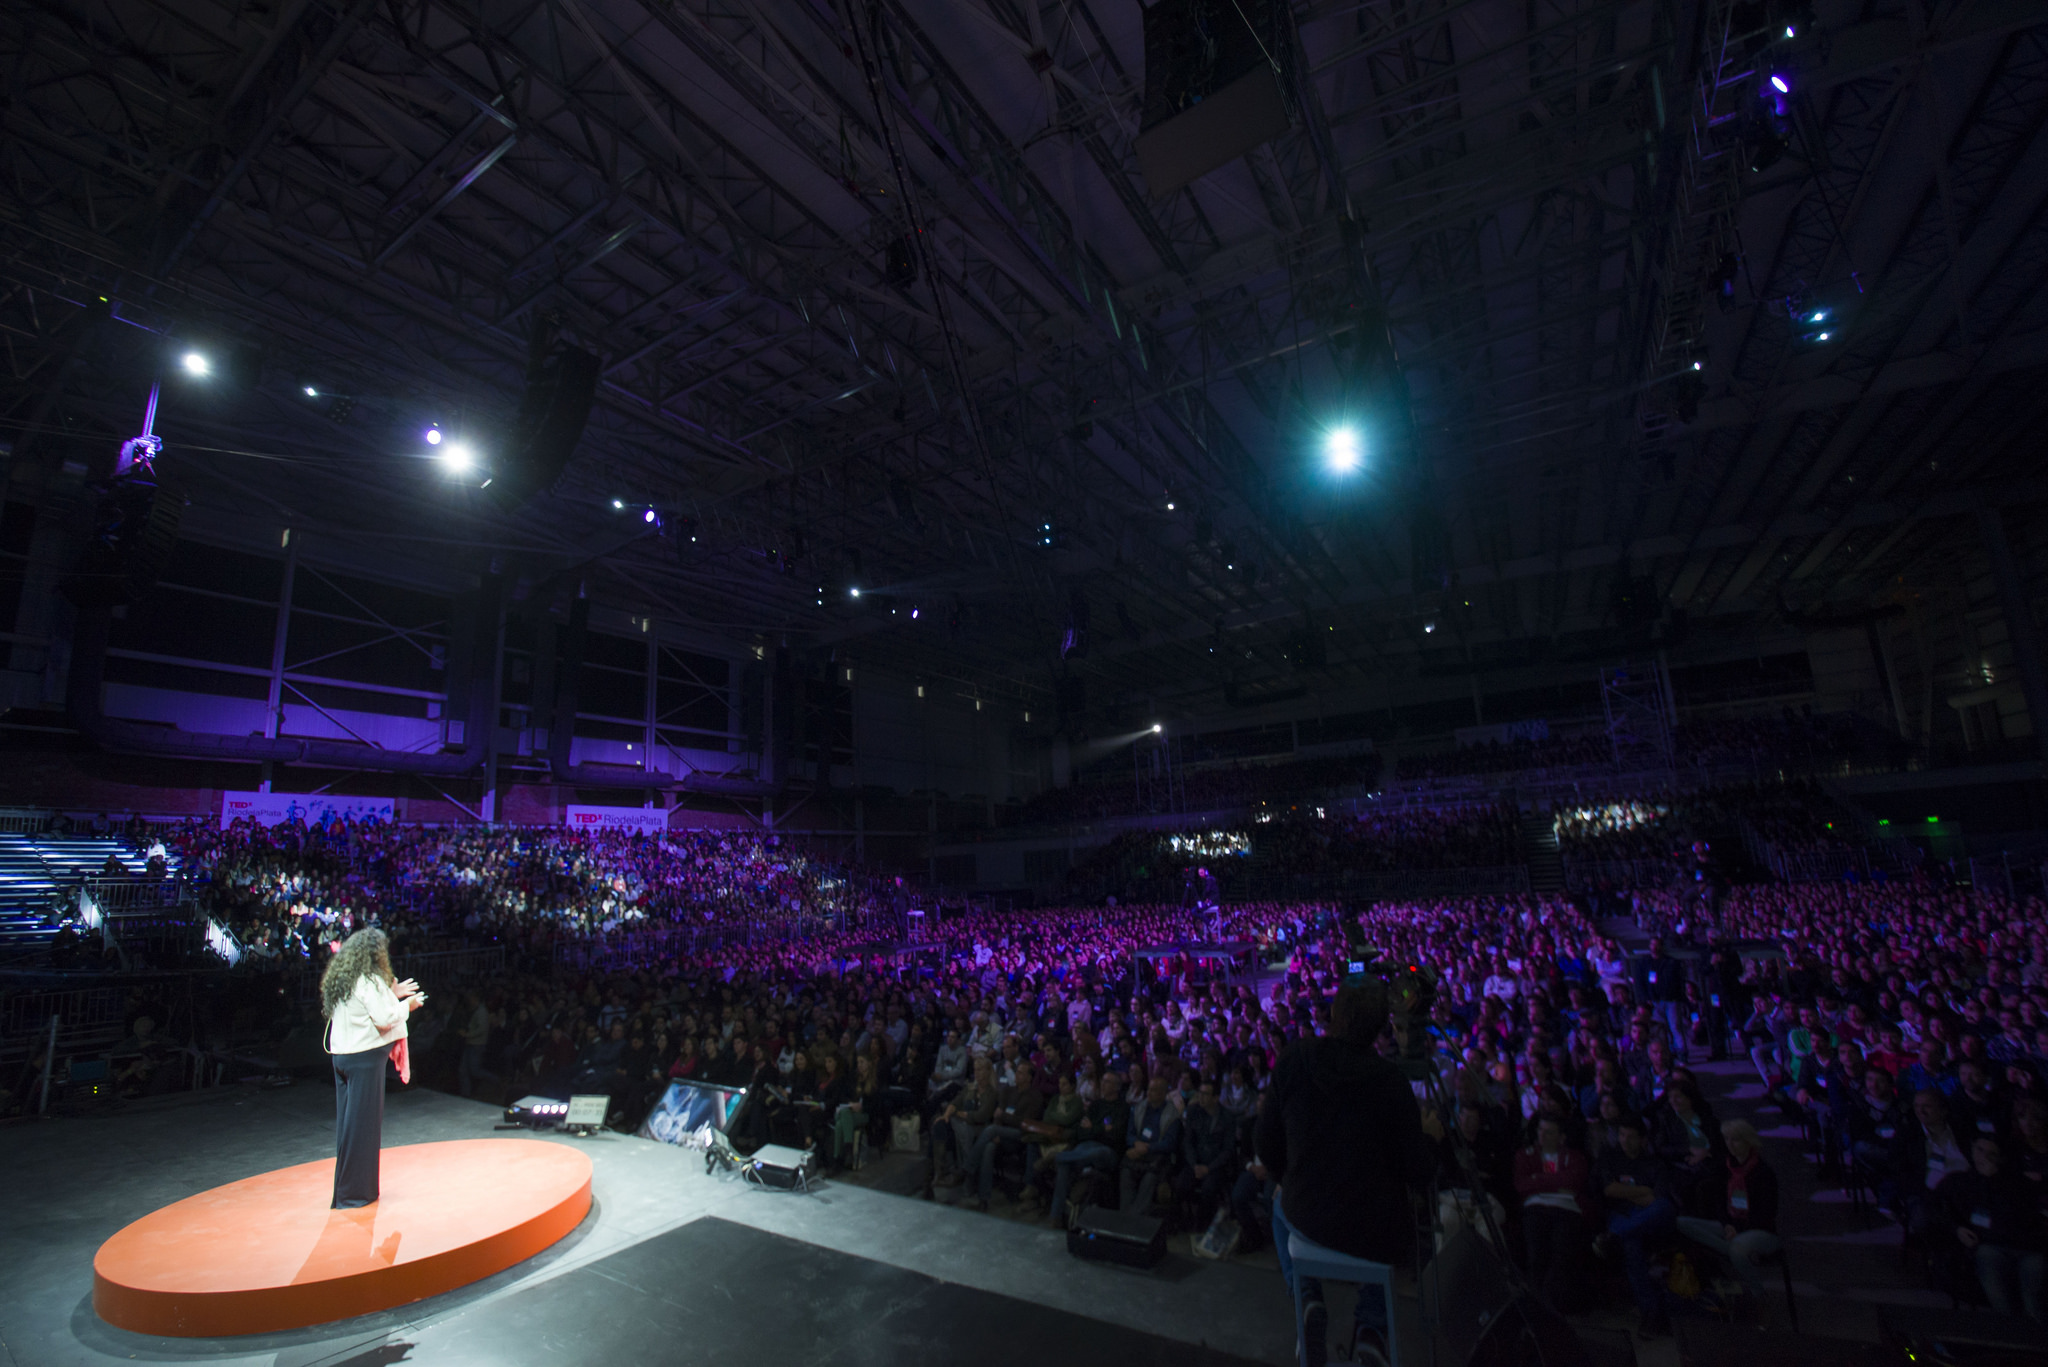 What an audience of 10,000 looks like from the stage,